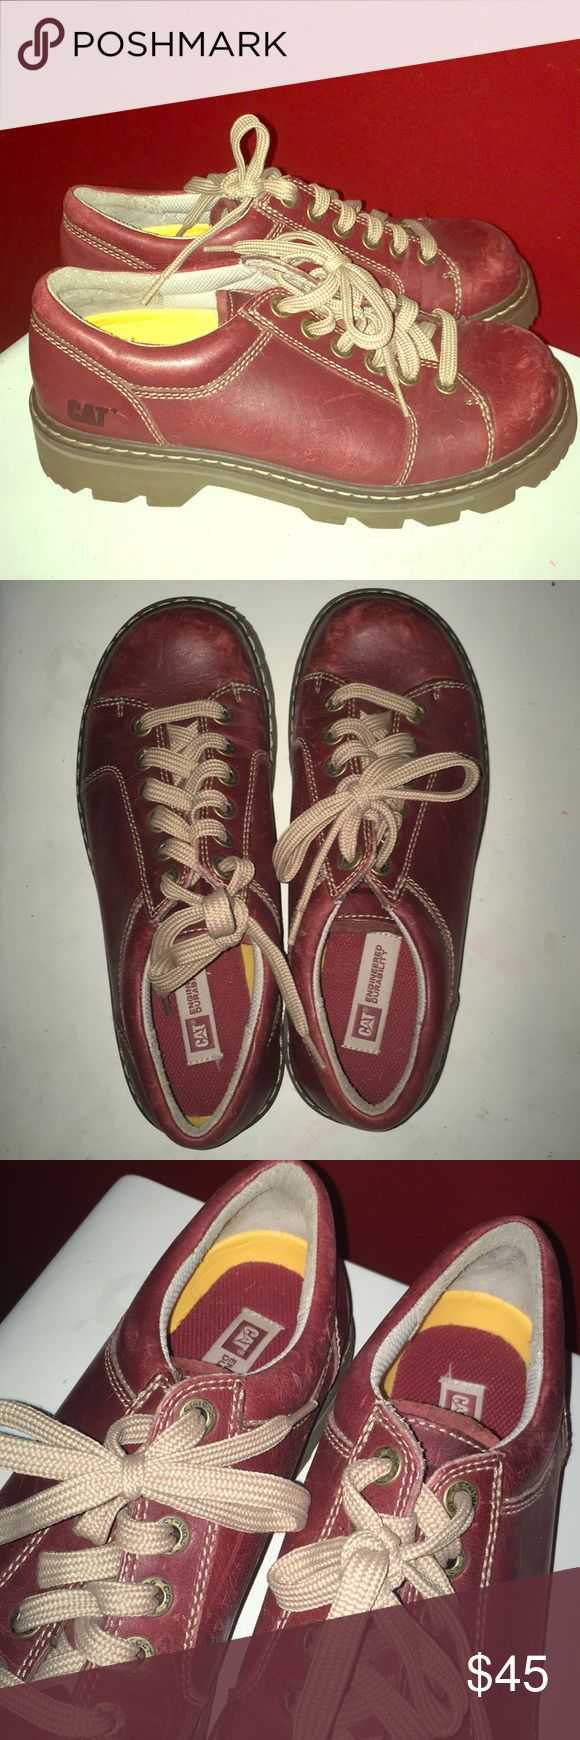 Maroon Caterpillar Doc Marten / style Boots Size 10 chunky 90's/grunge feel  Great condition Maroon / burgundy boots Size 10 Caterpillar Brand Look like Doc Marten 's  Worn a handful of times Very little wear A few scuffs Caterpillar Shoes Ankle Boots & Booties